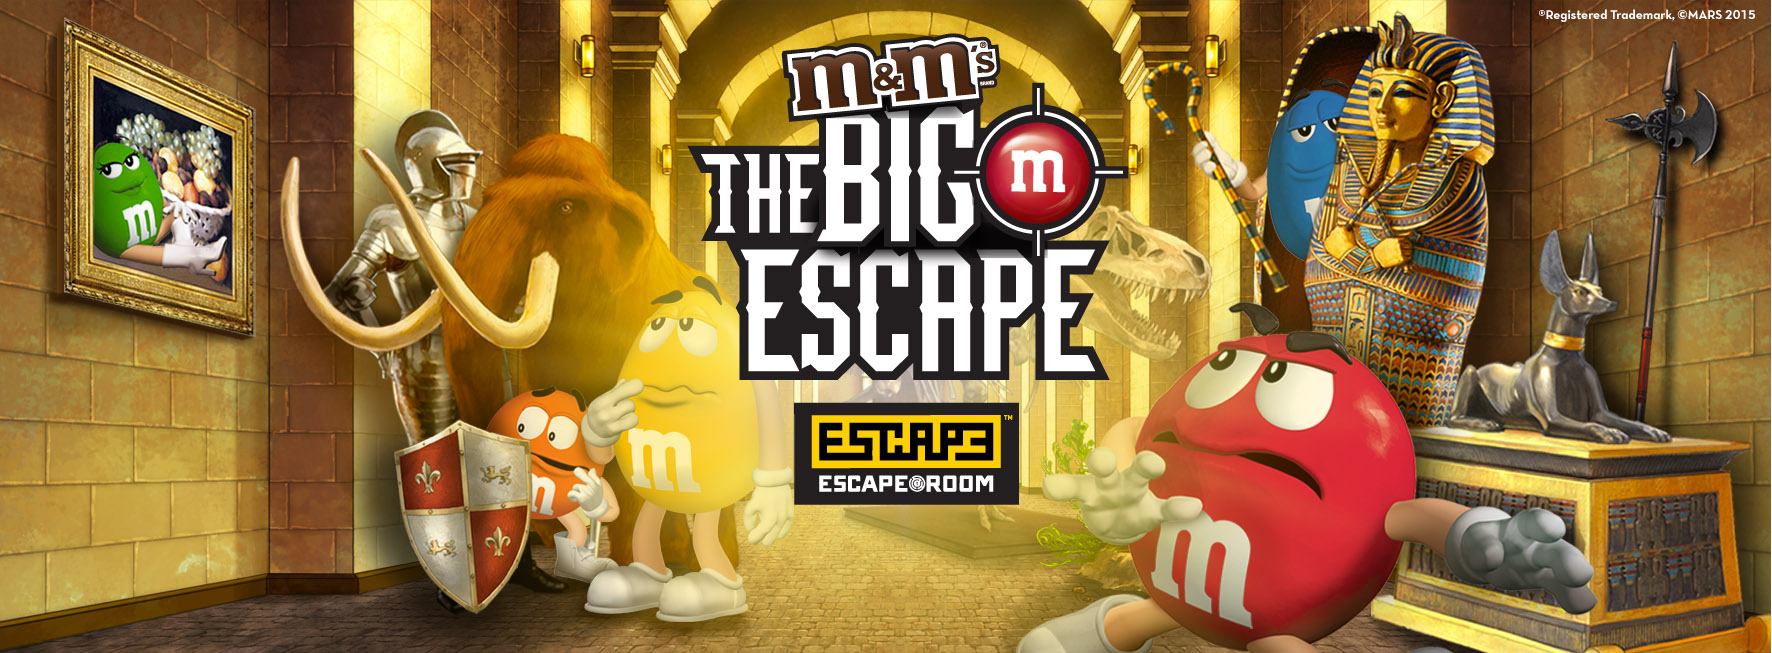 Image from Escape Room